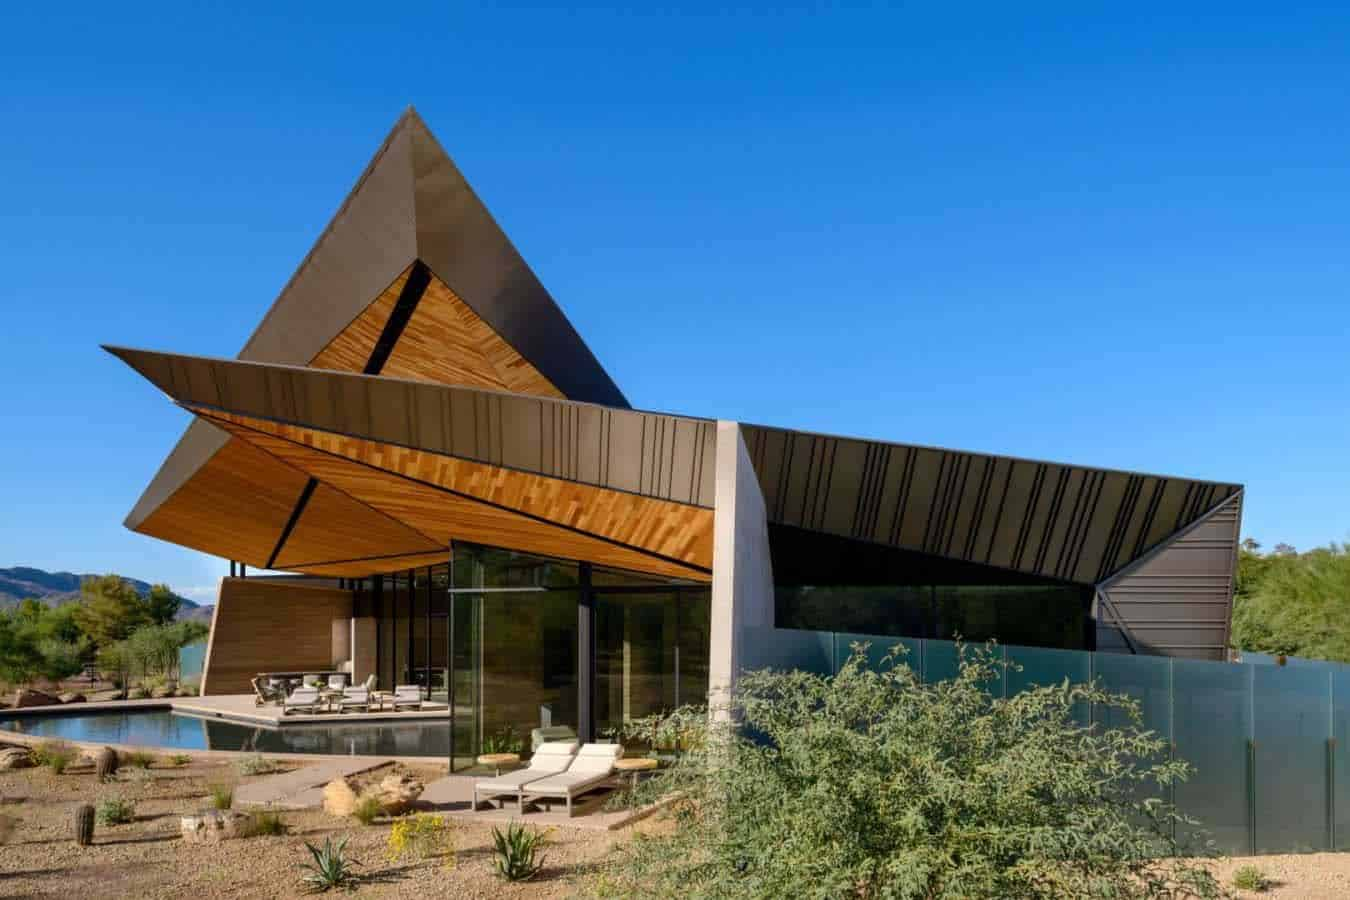 Rammed earth home is architectural masterpiece in the ... on compressed earth block homes, modern earth sheltered homes, earth cement floors in homes, modern ranch style house designs, earth natural built homes, modern home design,